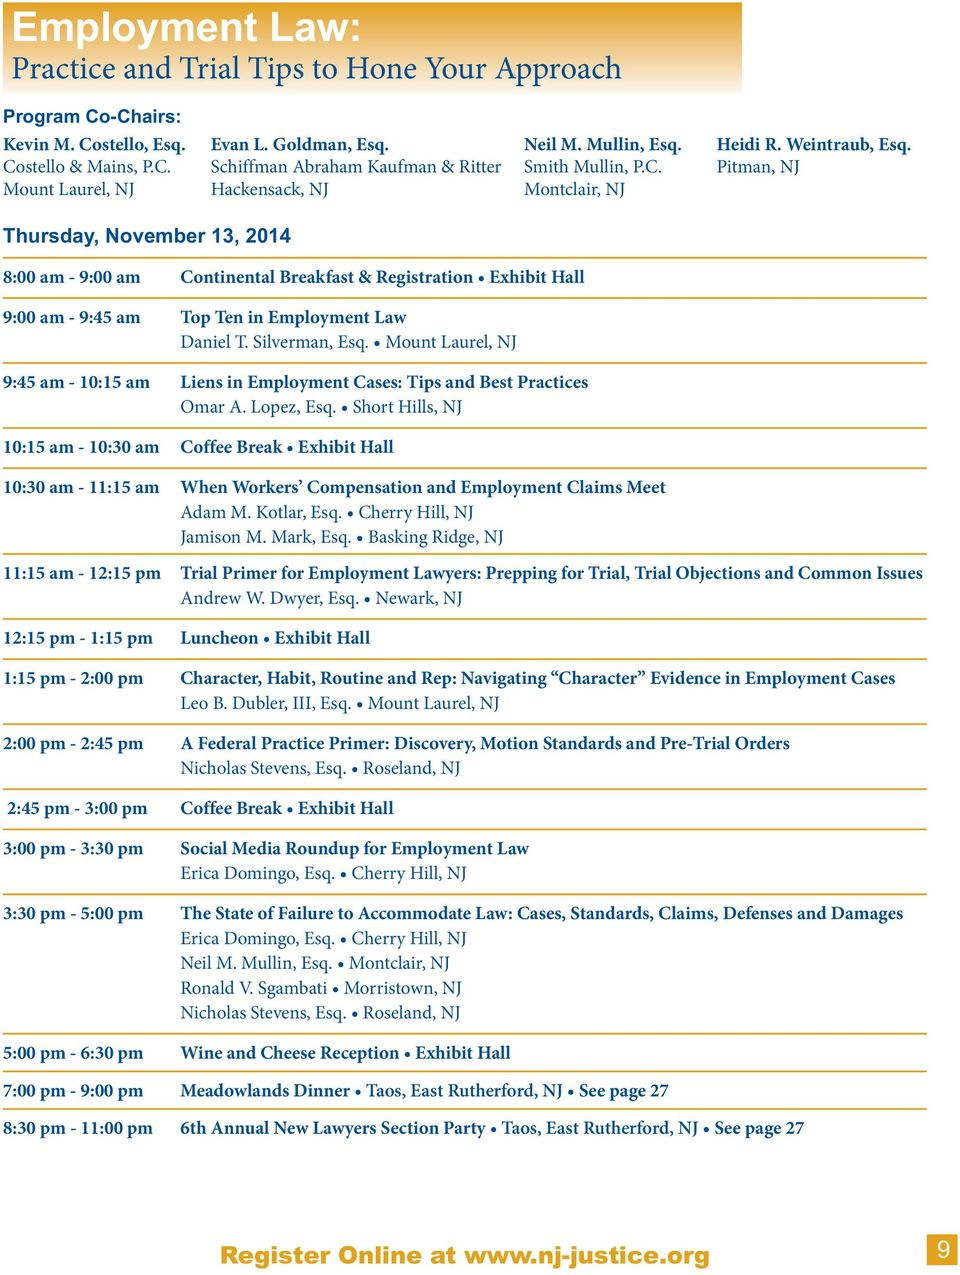 Pitman, NJ Thursday, November 13, 2014 8:00 am - 9:00 am Continental Breakfast & Registration Exhibit Hall 9:00 am - 9:45 am Top Ten in Employment Law Daniel T. Silverman, Esq.